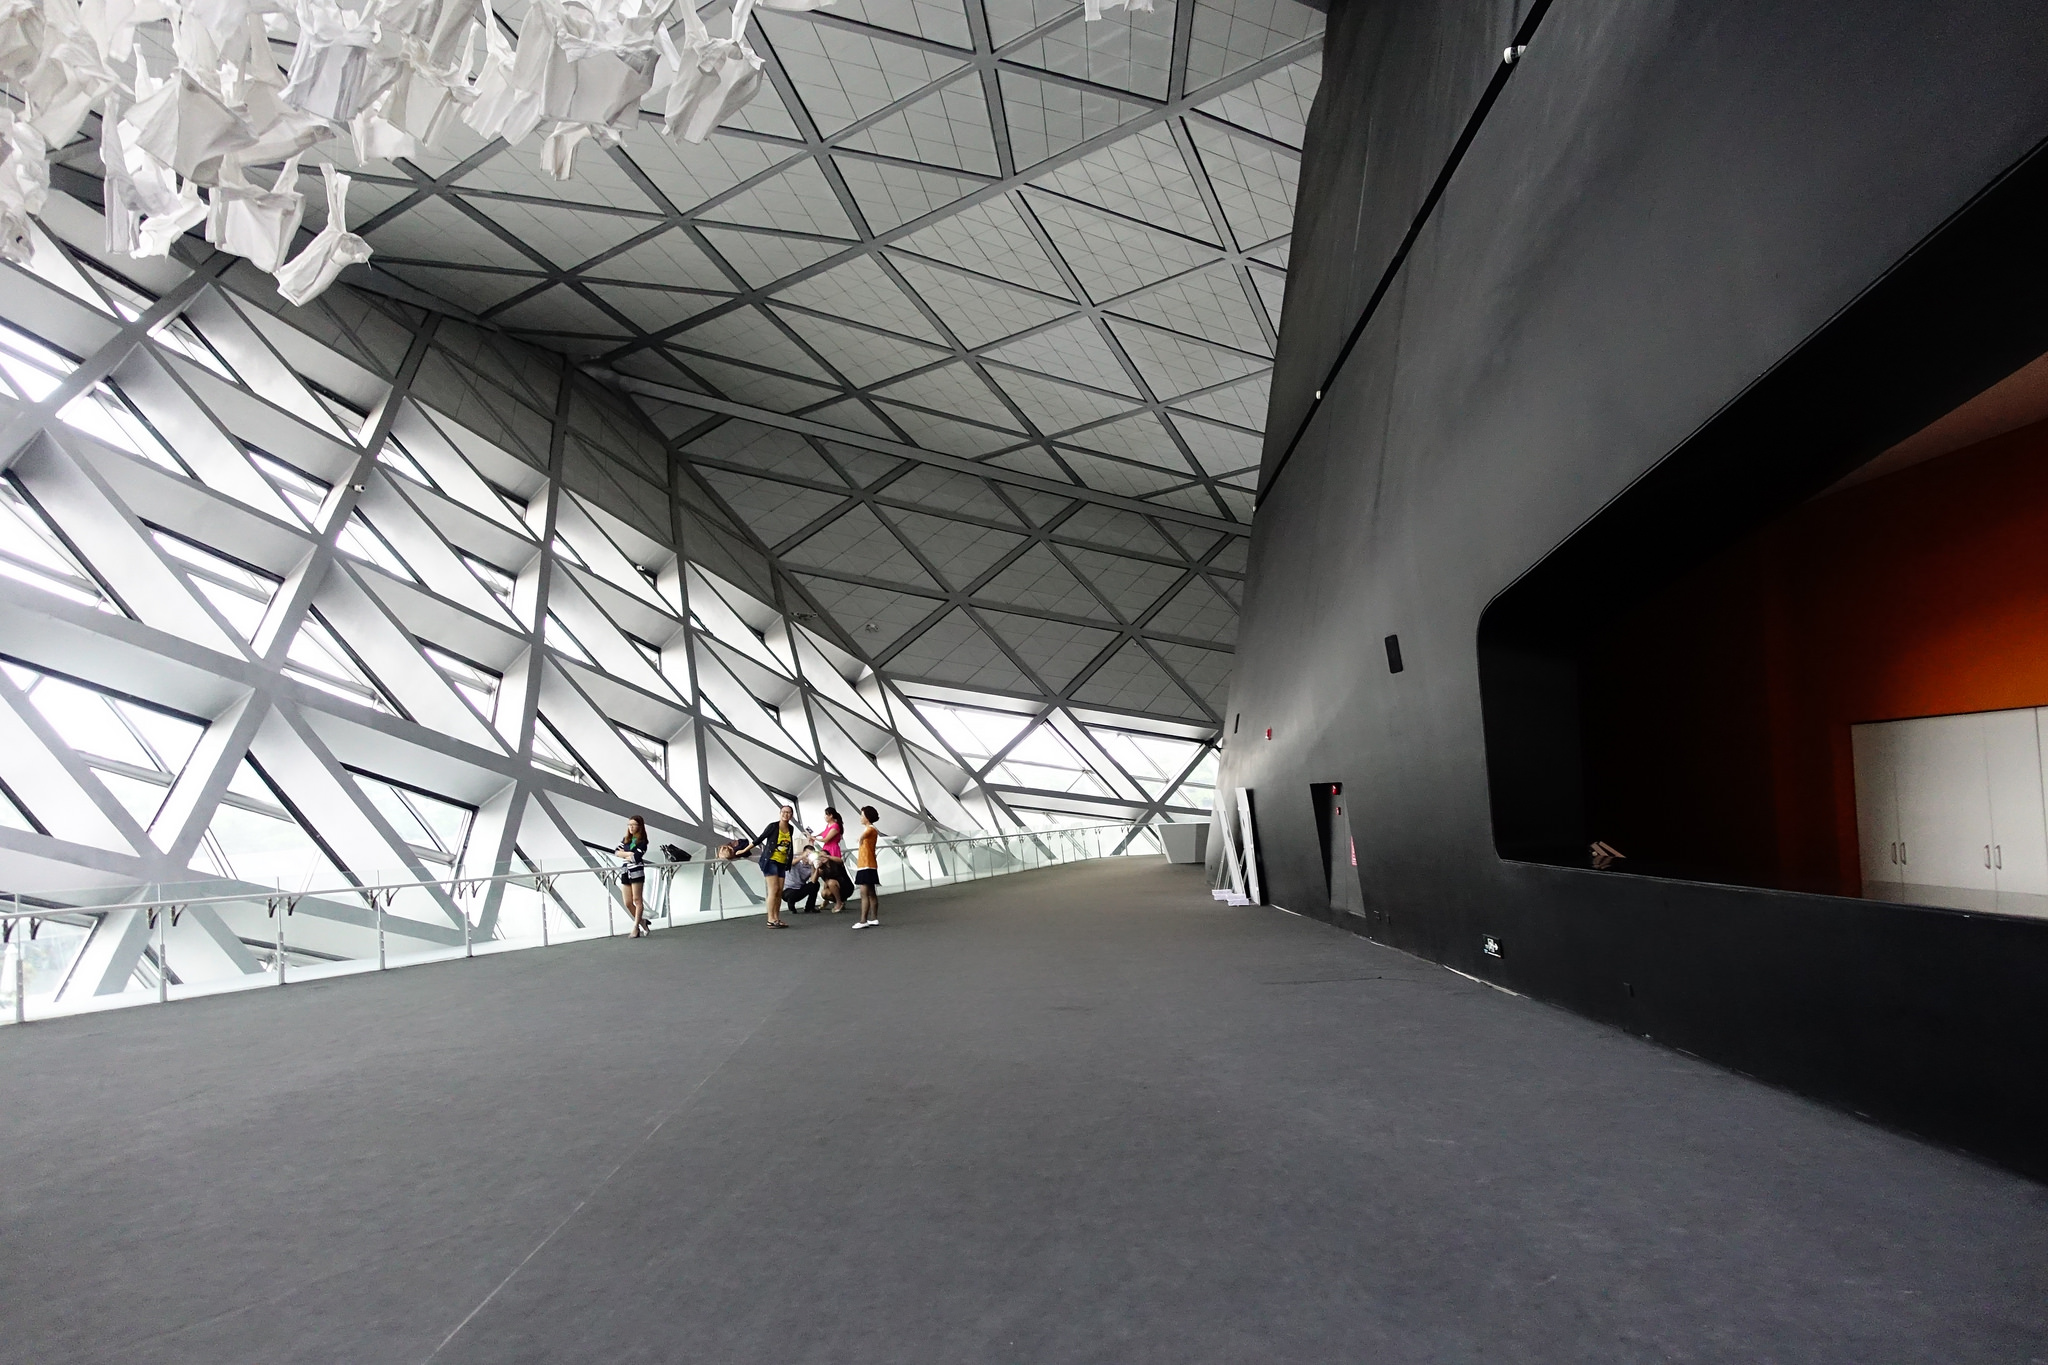 Child Wallpaper Hd The 10 Must See Buildings Designed By Zaha Hadid